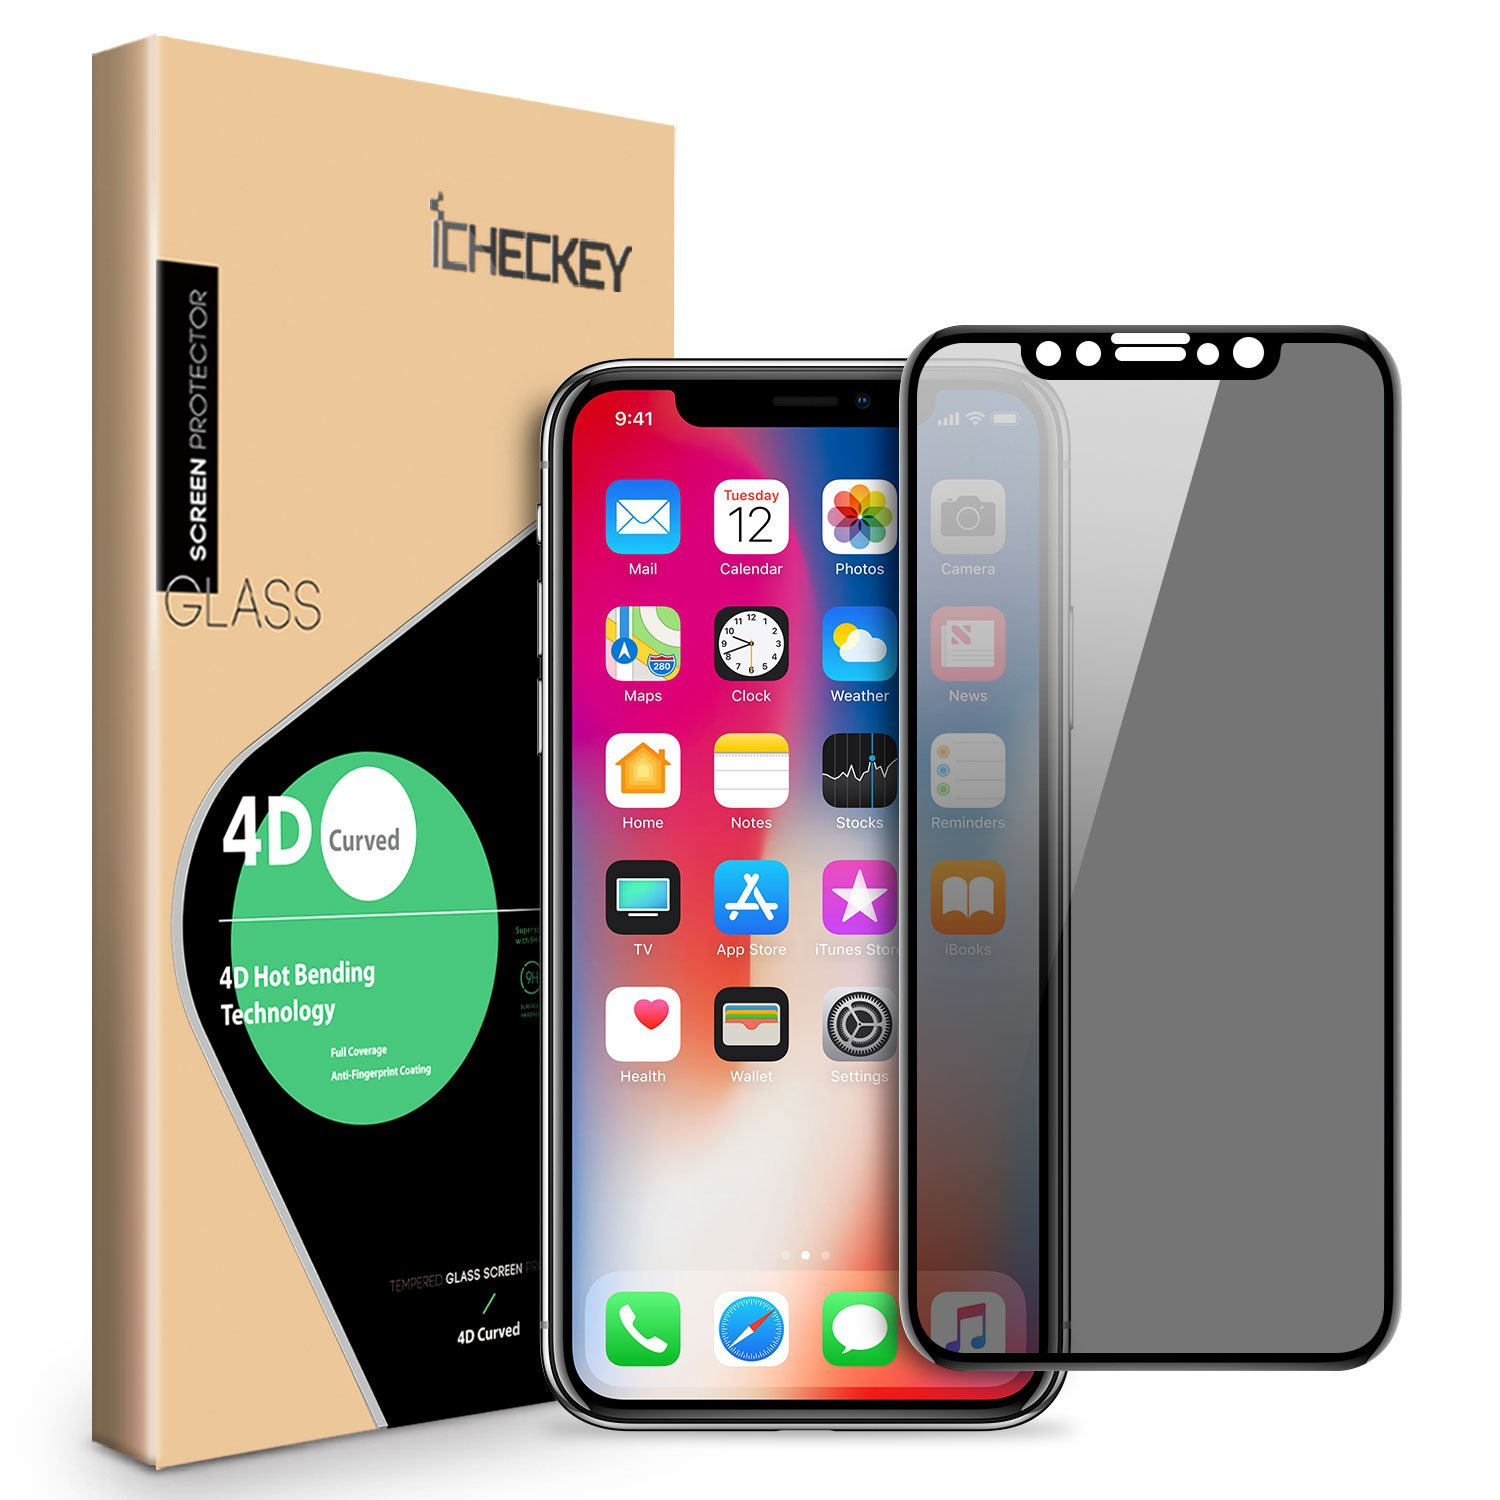 iPhone X Privacy Screen Protector - ICHECKEY 4D Curved Anti-Spy Anti-Peep Full Coverage Tempered Glass Screen Cover Shield for Apple iPhone X/iPhone 10, 5.8 Inch – Black